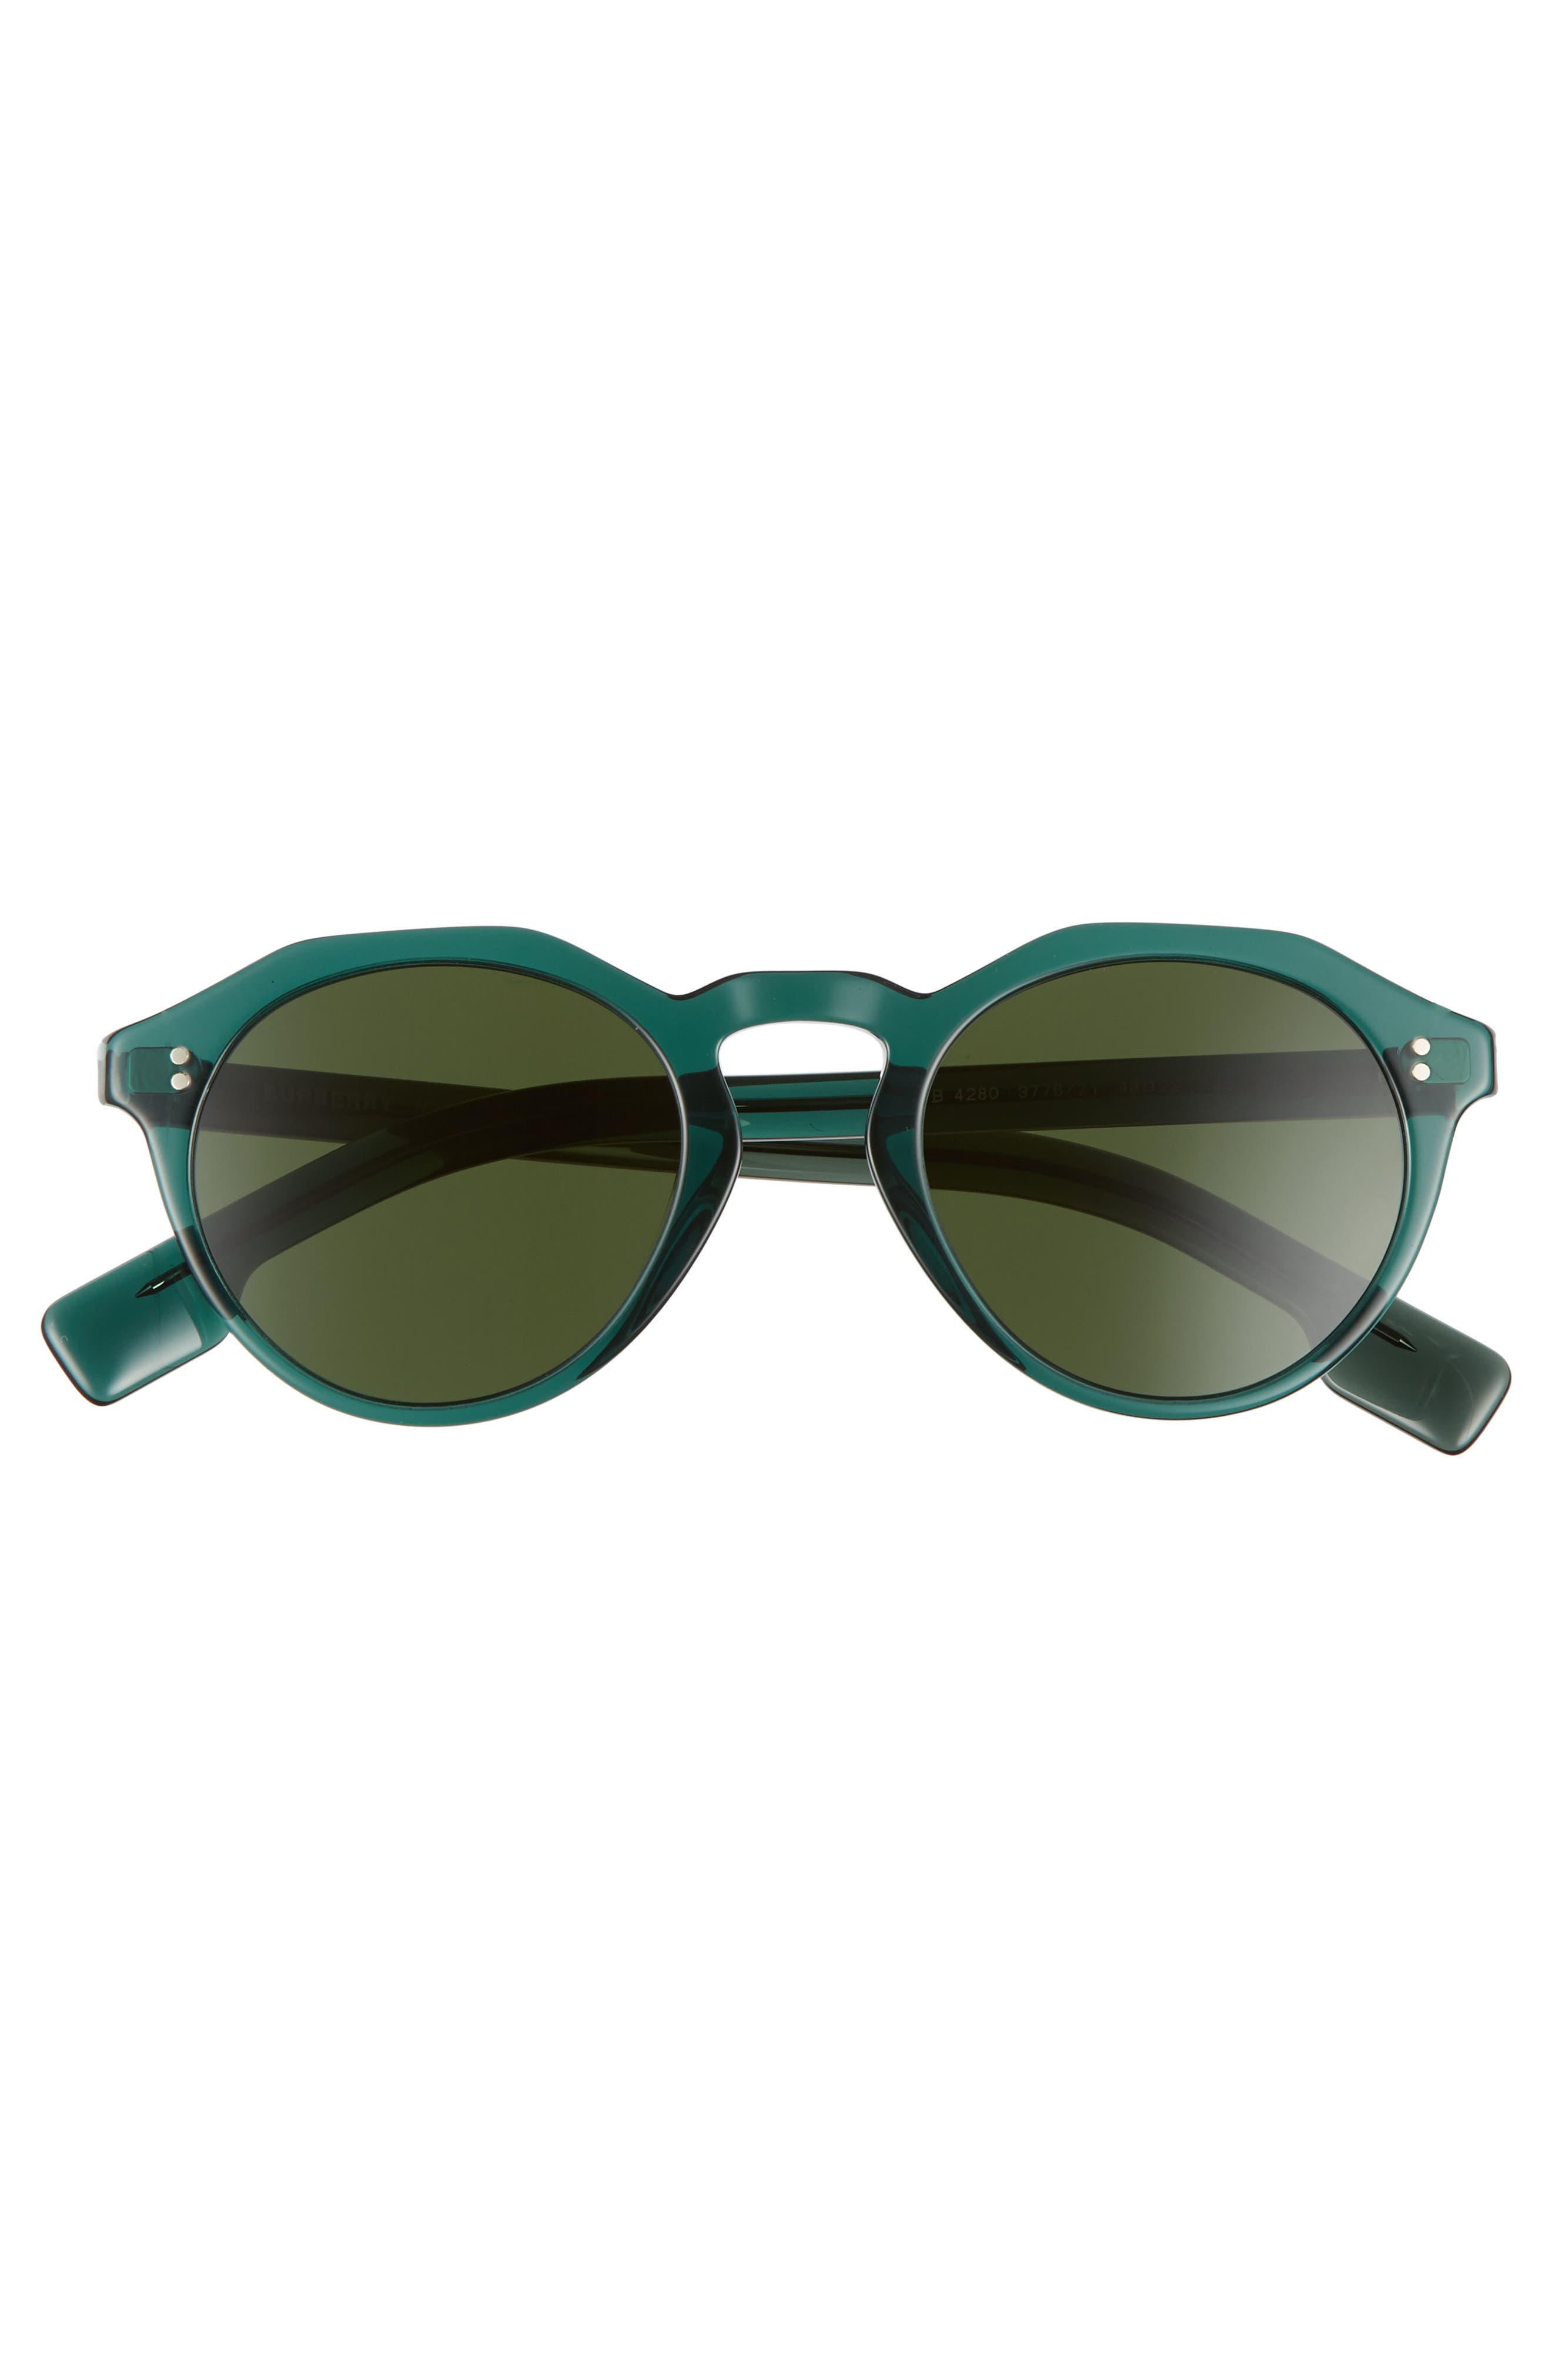 48mm Round Sunglasses,                             Alternate thumbnail 3, color,                             GREEN/ GREEN SOLID